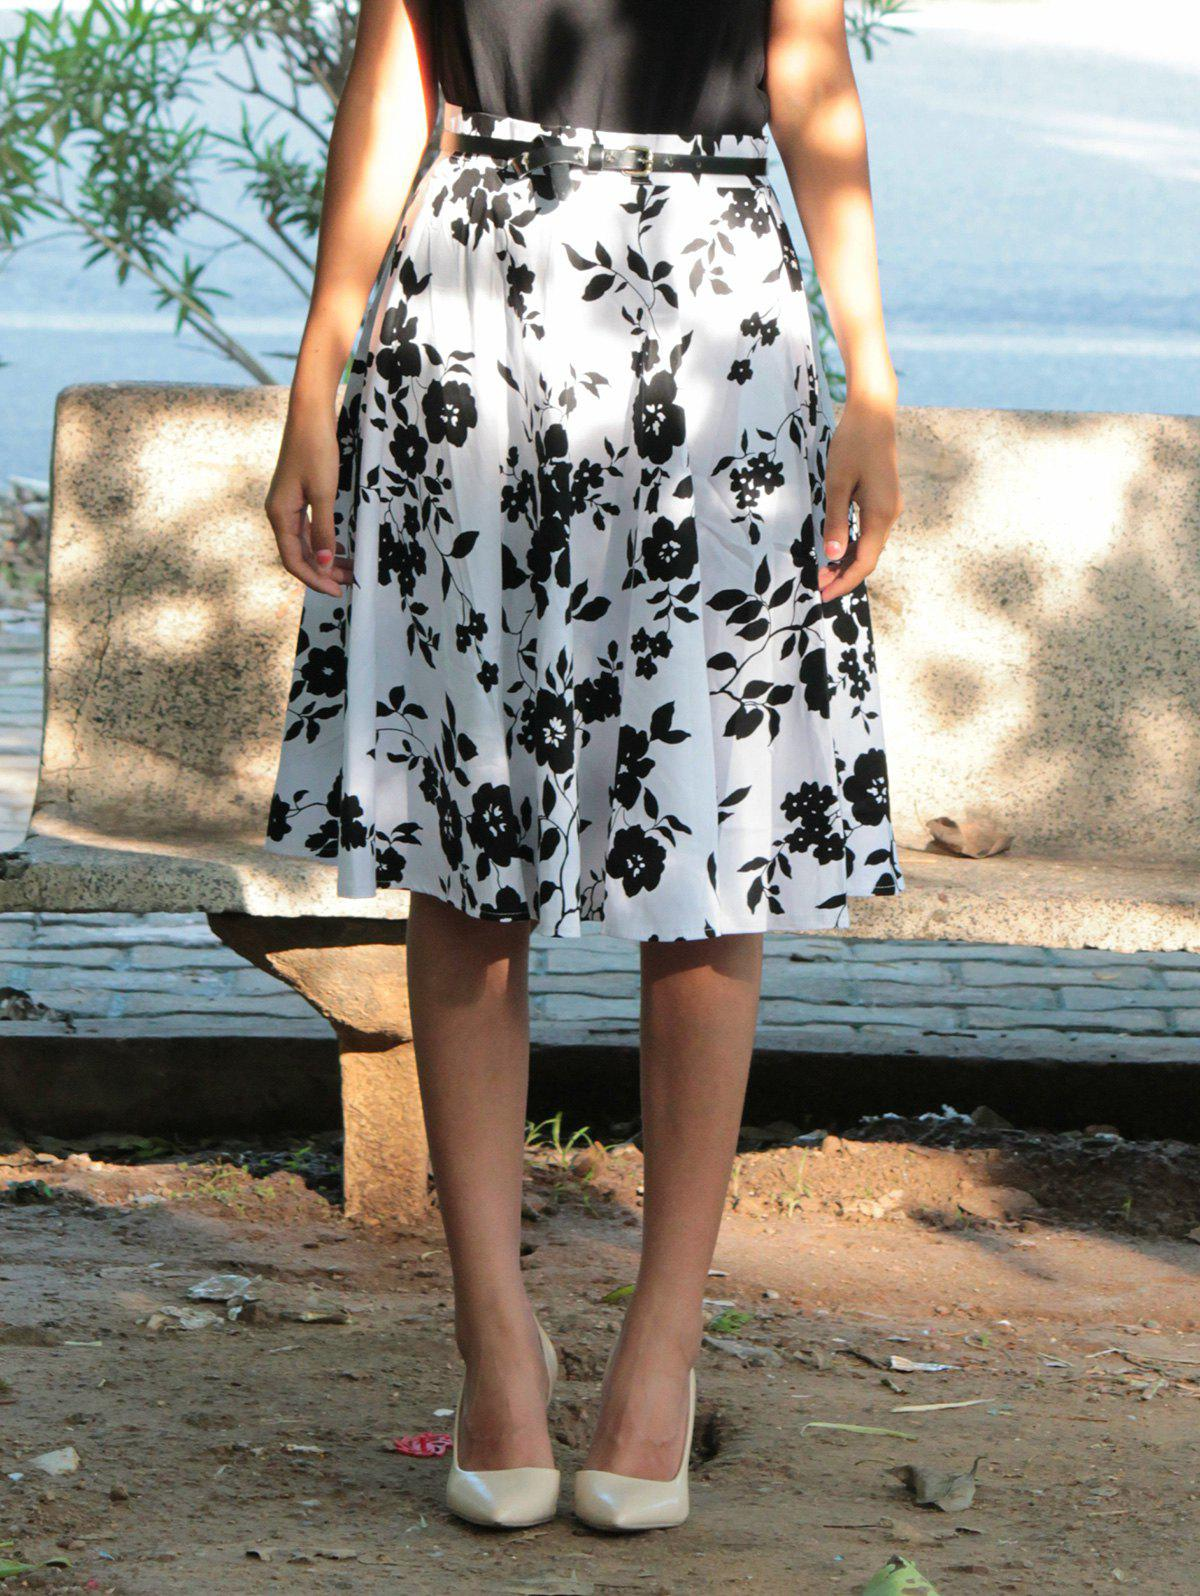 Vintage High-Waisted A-Line Floral Print Women's Skirt - S WHITE/BLACK